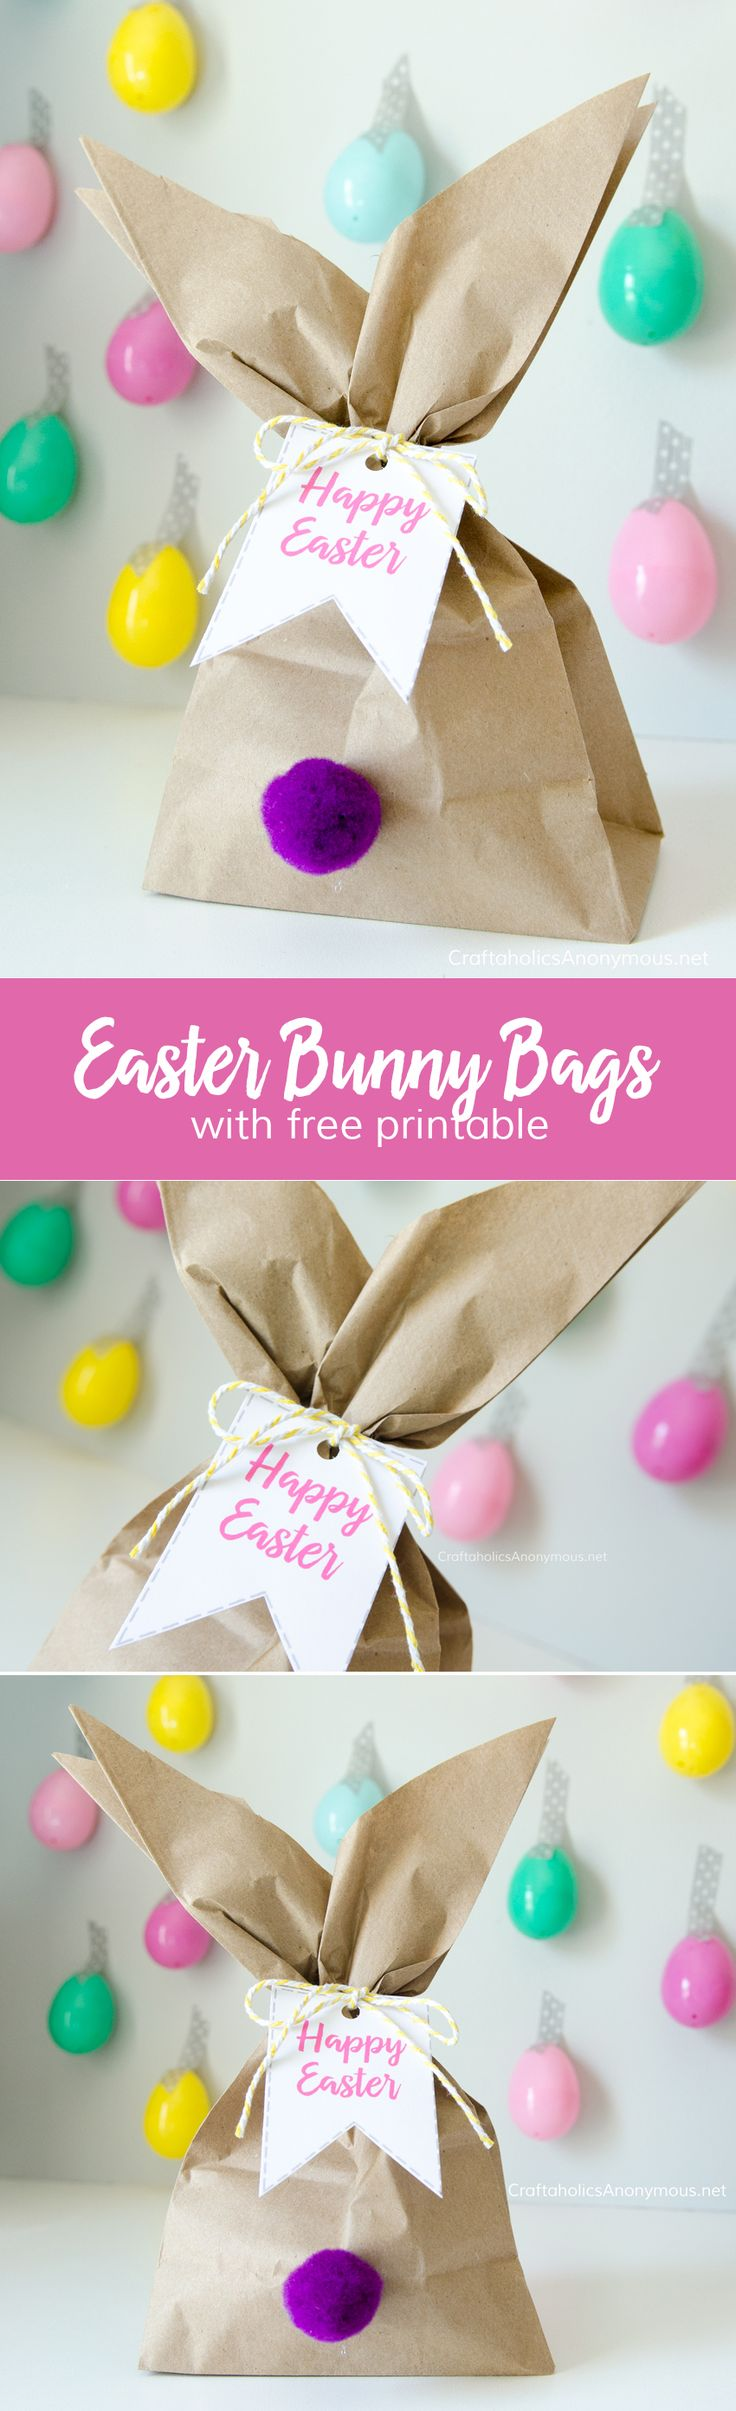 4488 best creative classrooms images on pinterest classroom setup easter bunny gift bags with free printable tags negle Gallery